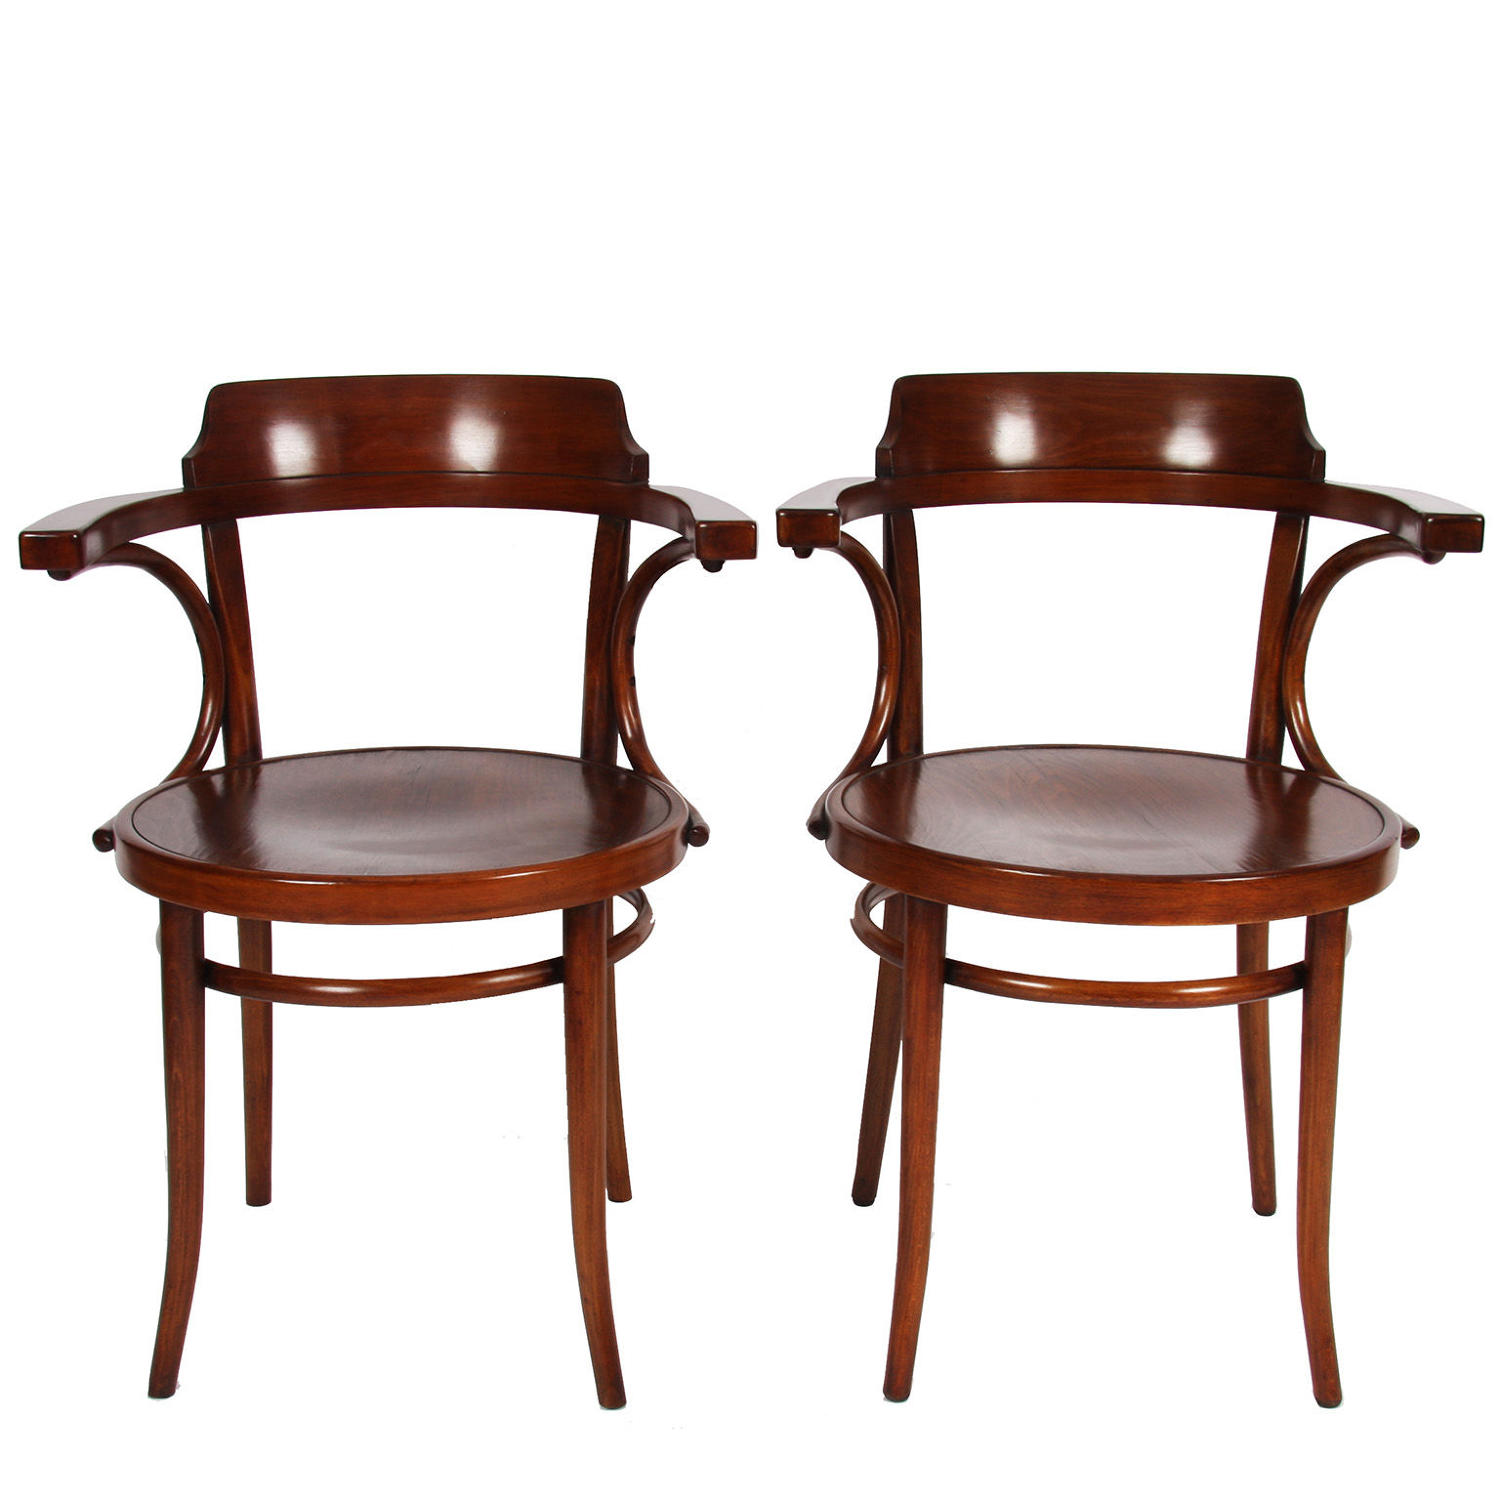 Pair of Stained Beech Chairs by Thonet